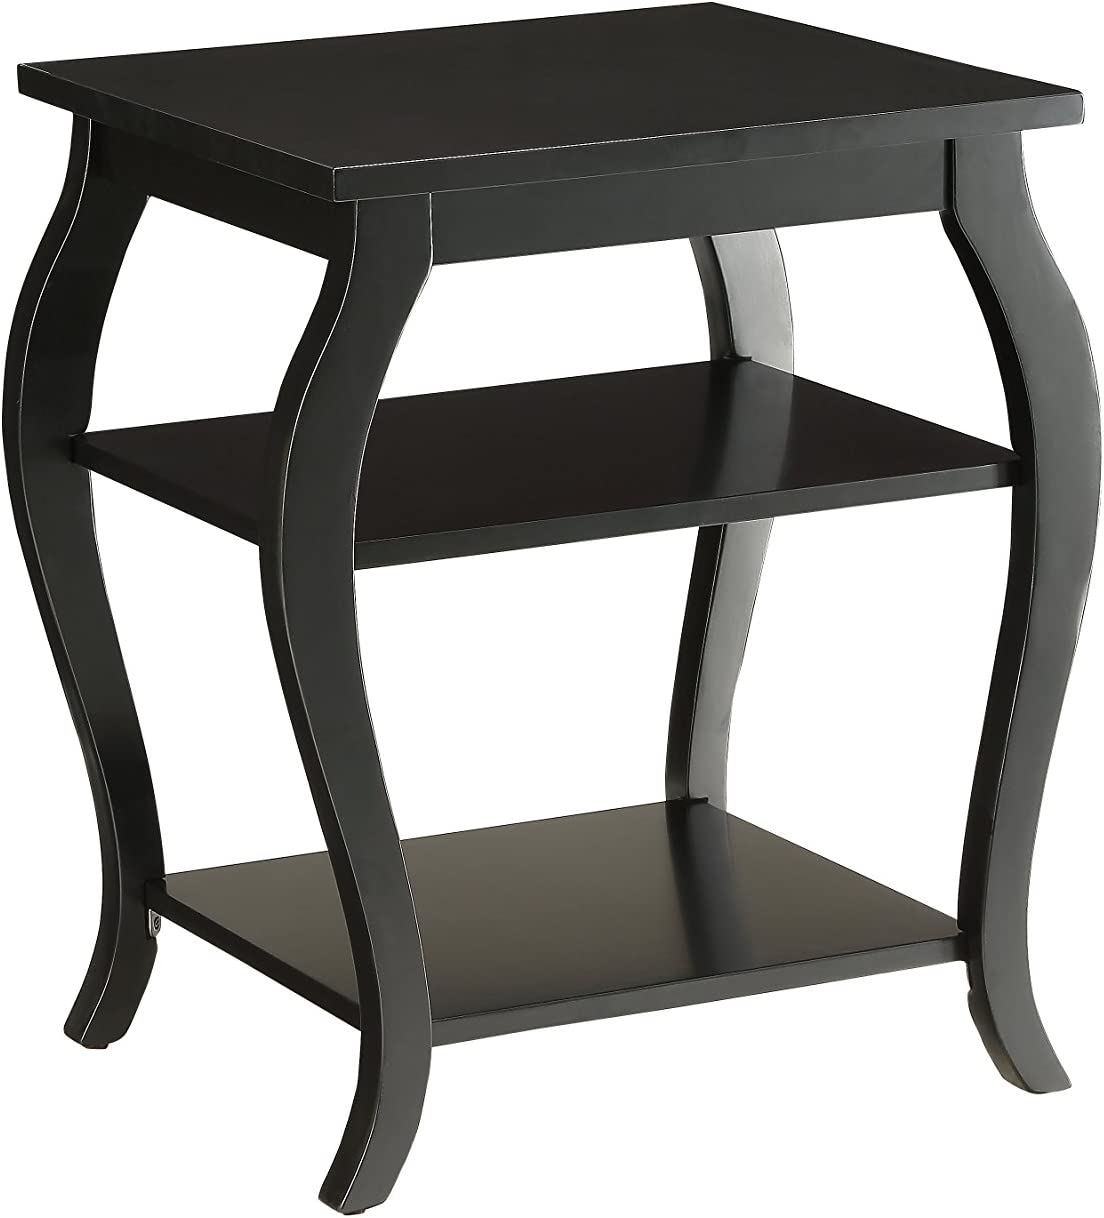 ACME Furniture 82826 Becci End Table, One Size, Black